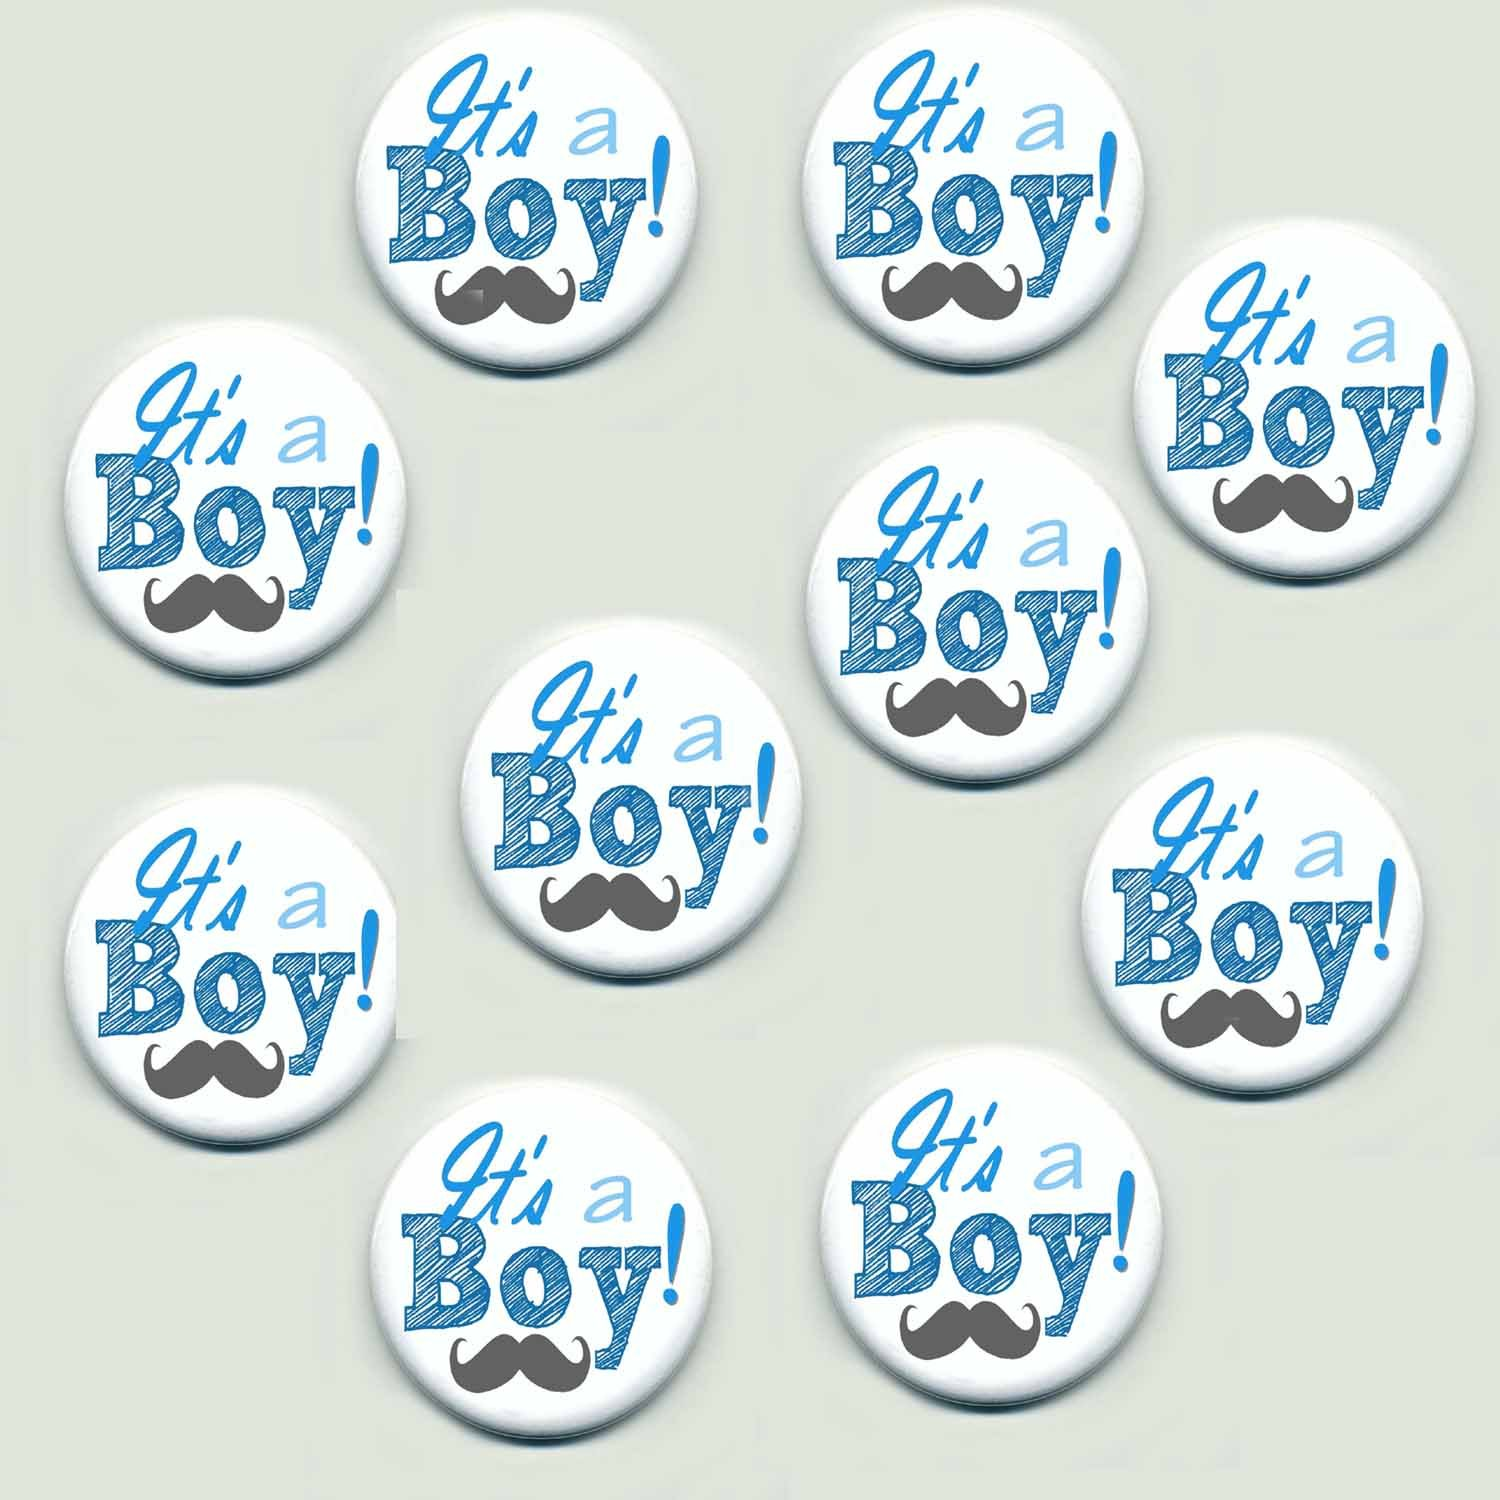 Amazon.com: Its a Boy Buttons 1.5 Inch Set of 10: Kitchen & Dining